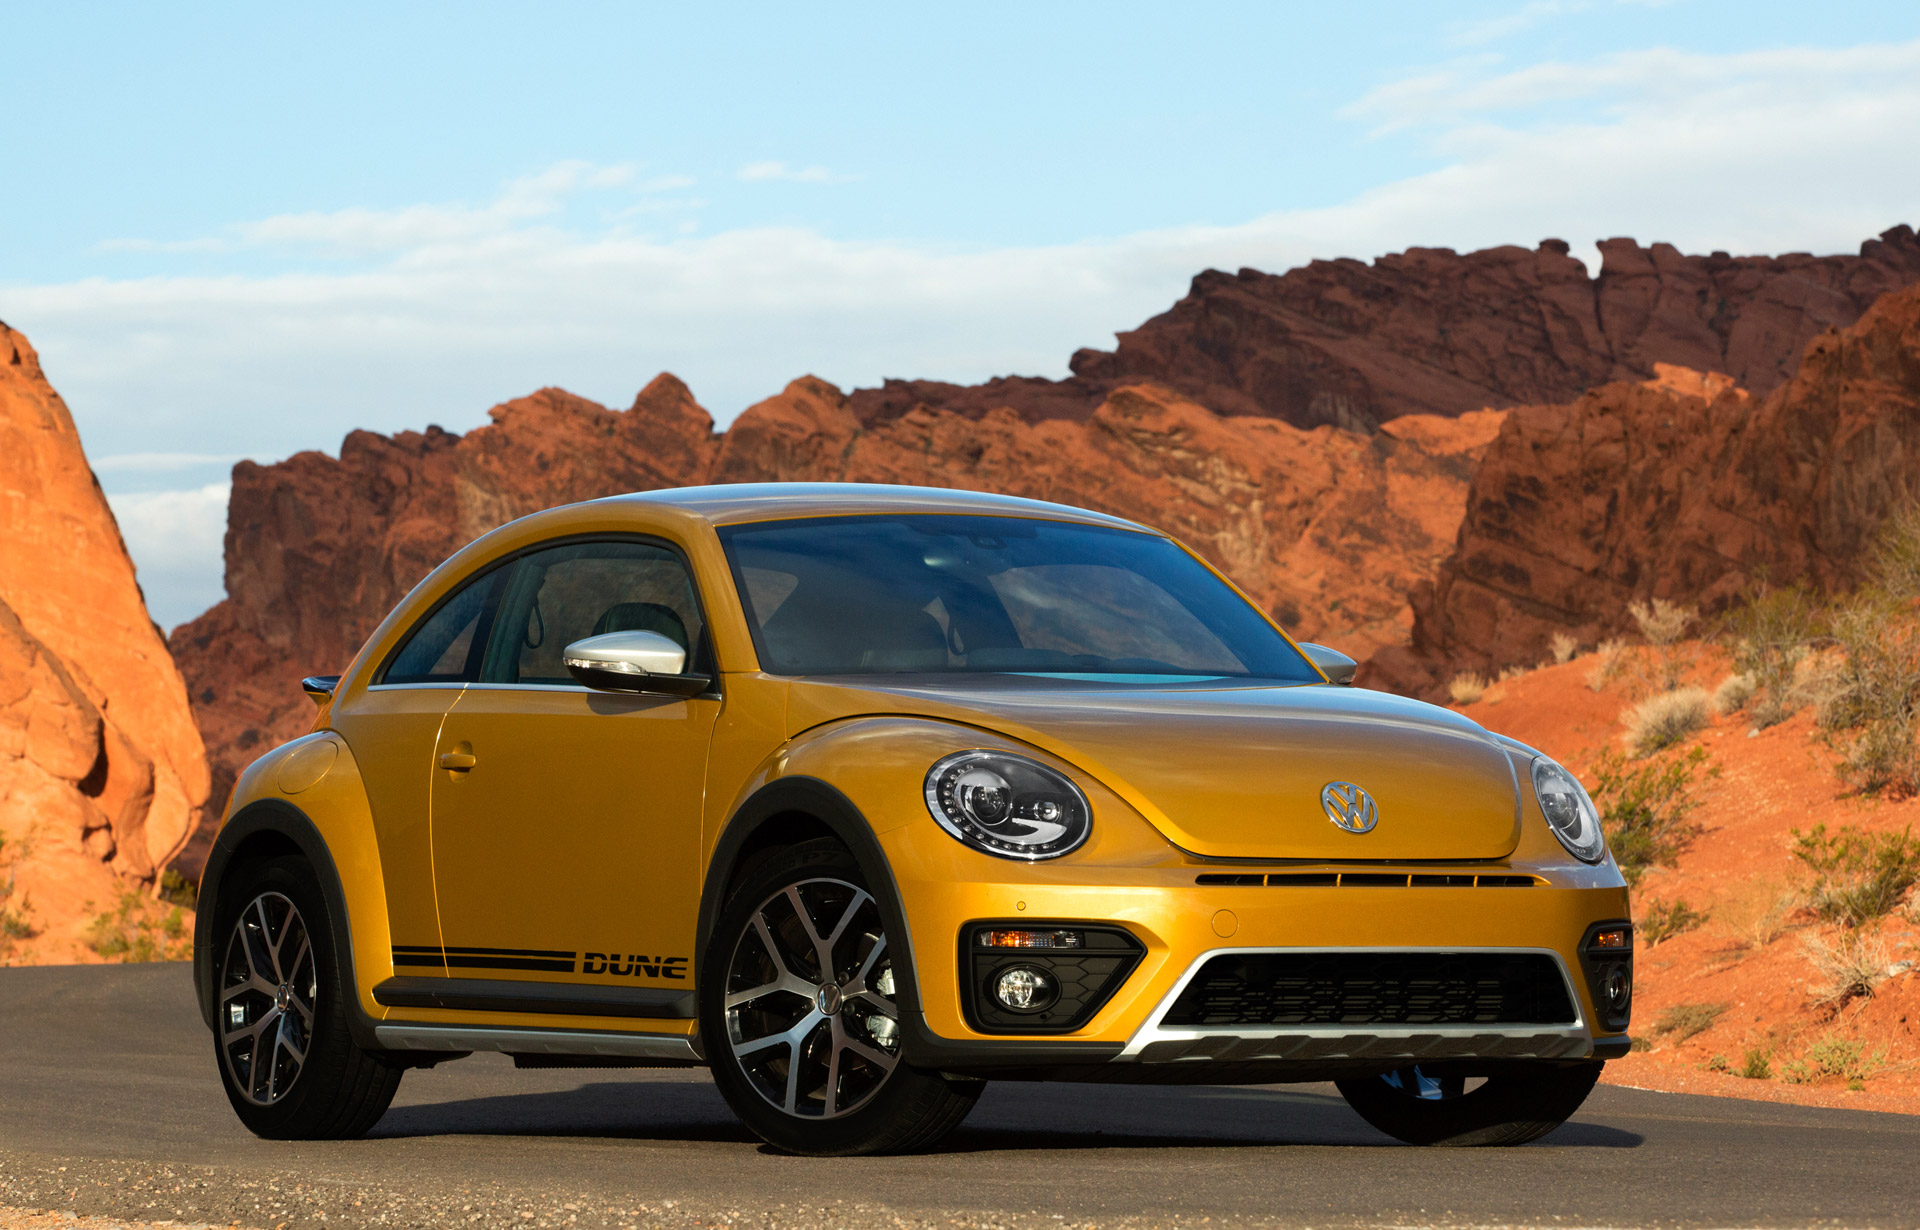 2016 Volkswagen Beetle Vw Review Ratings Specs Prices